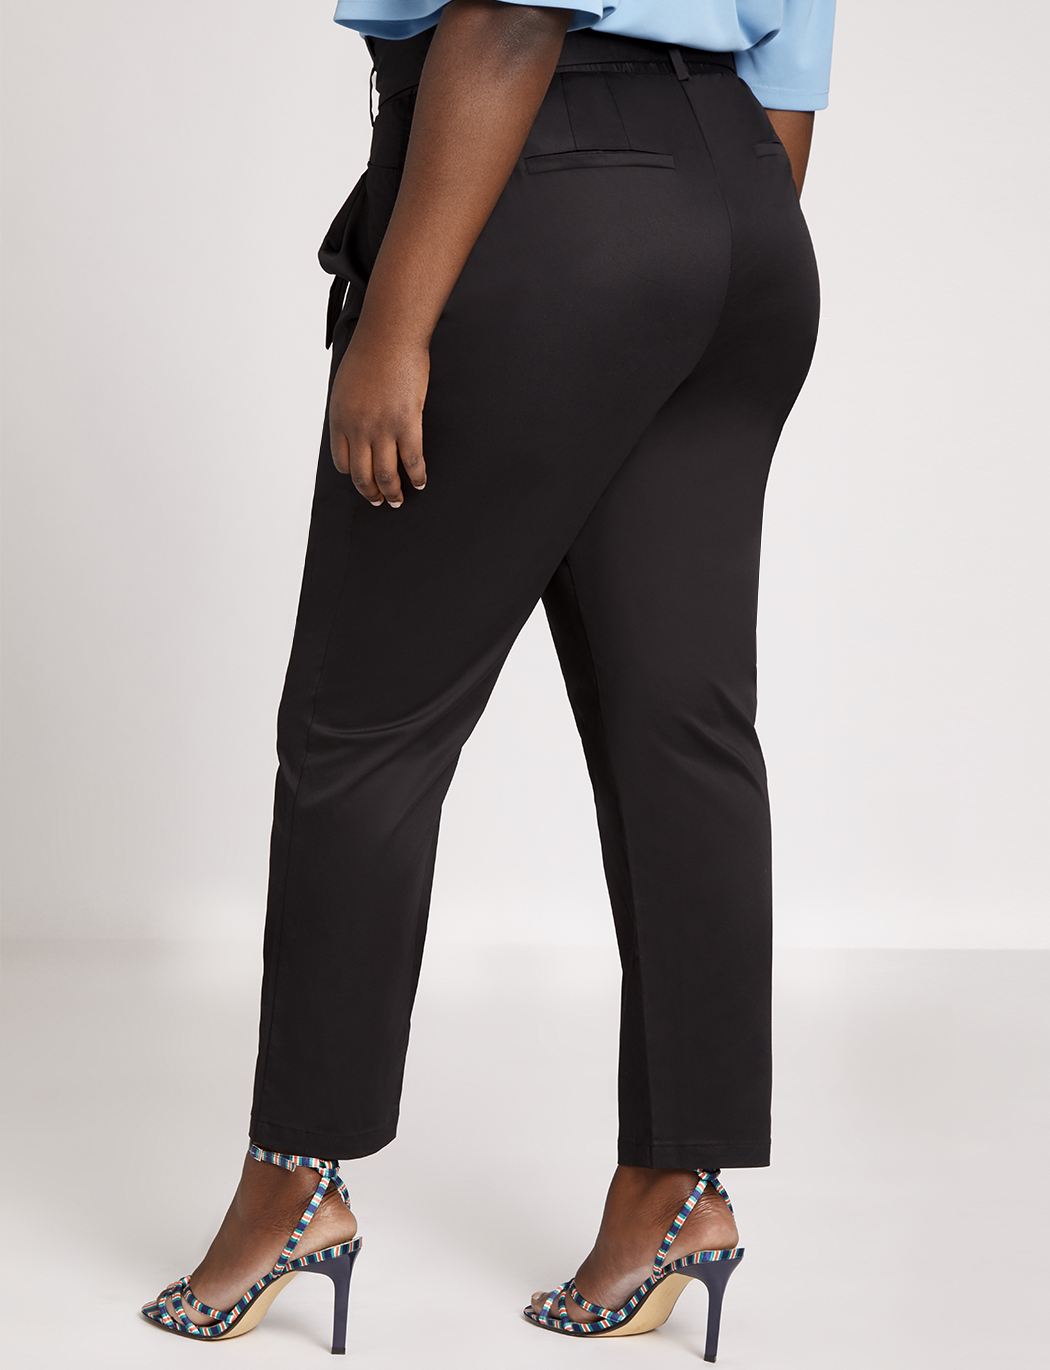 Paperbag Waist Trouser with Tie Detail